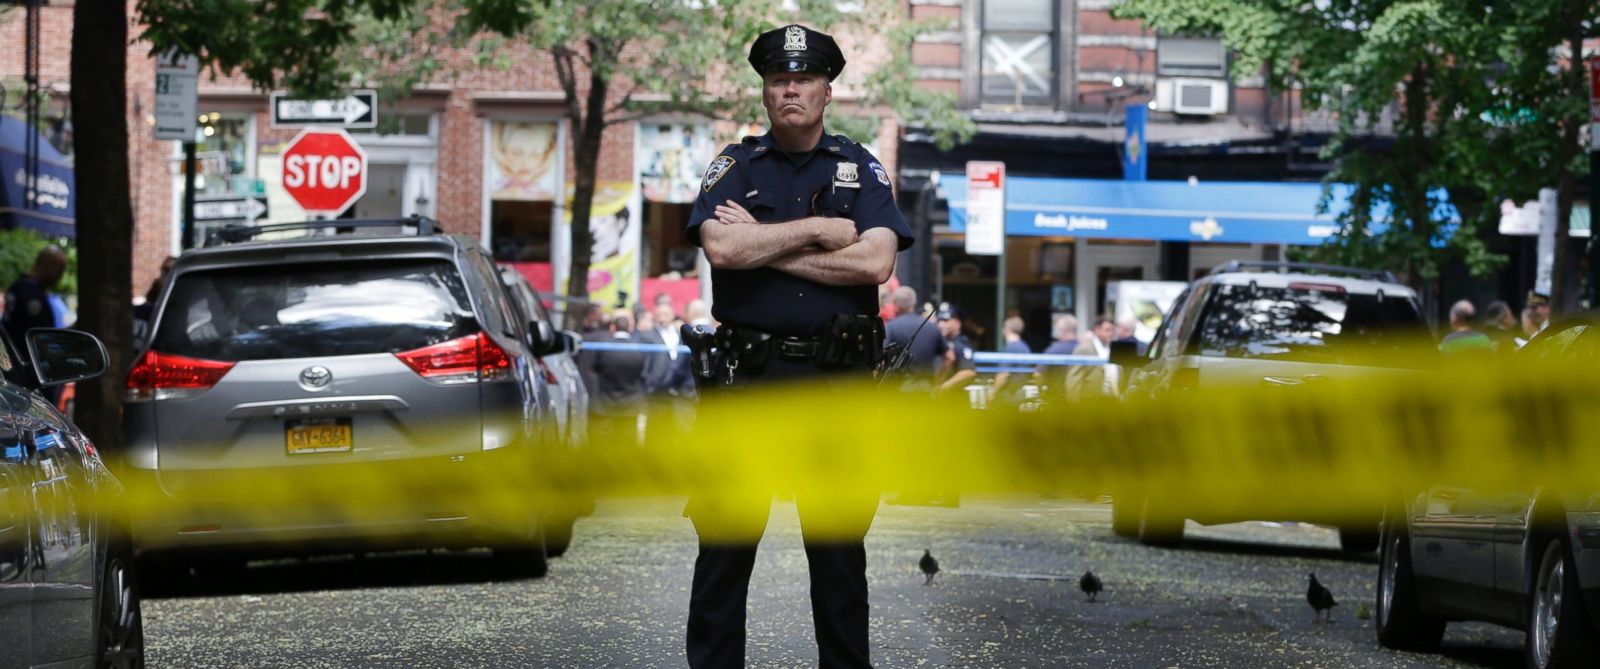 PHOTO: A police officer stands near the scene of a shooting at a New York City cigar shop, July 28, 2014.